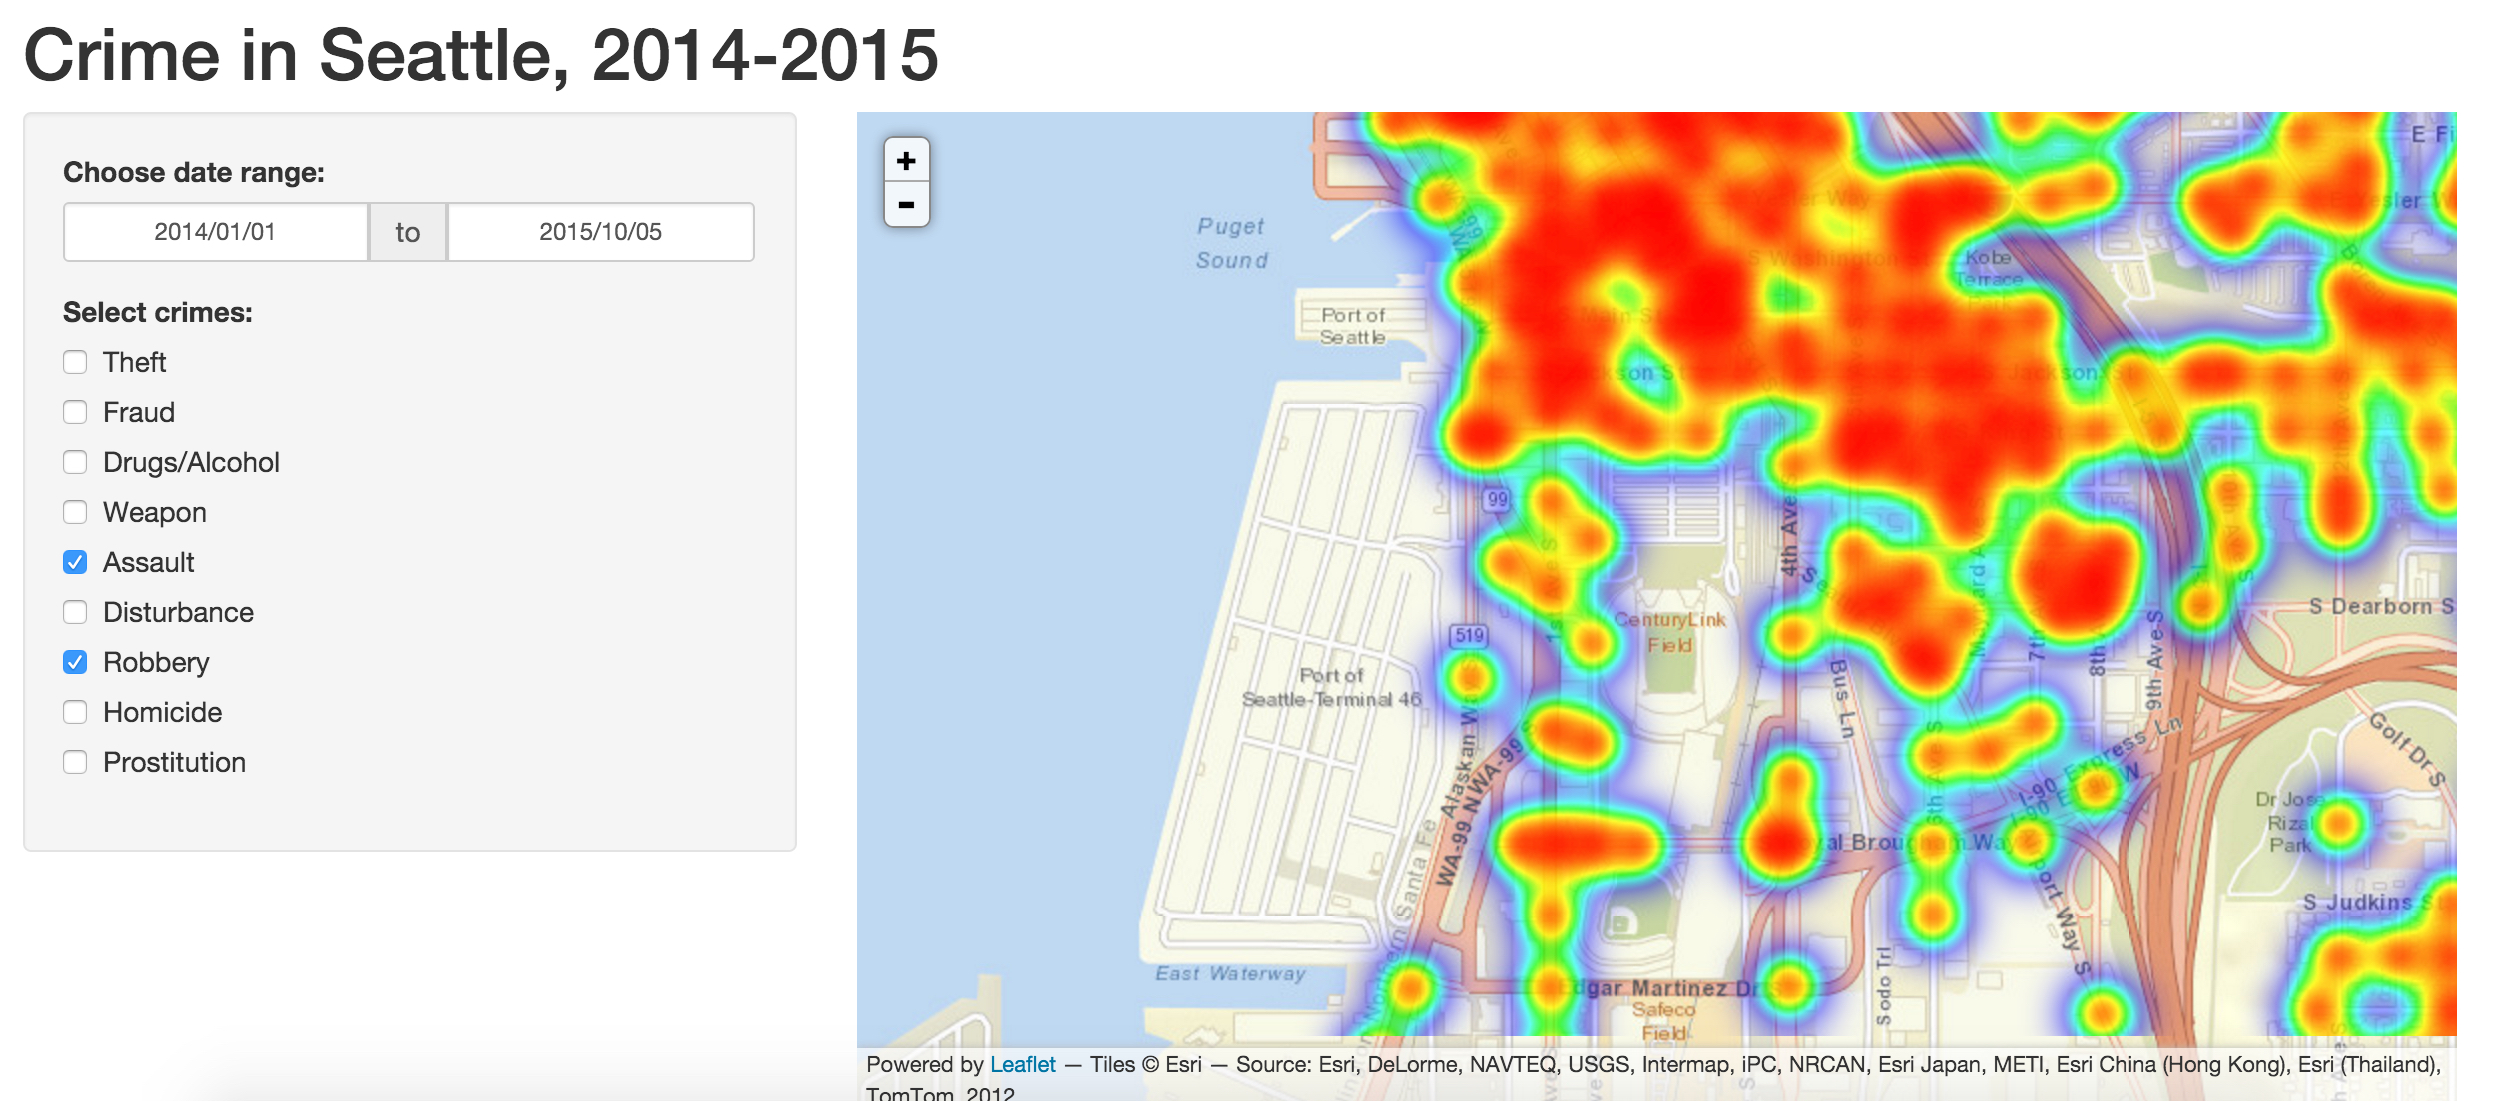 Crime Density in Seattle | NYC Data Science Academy Blog